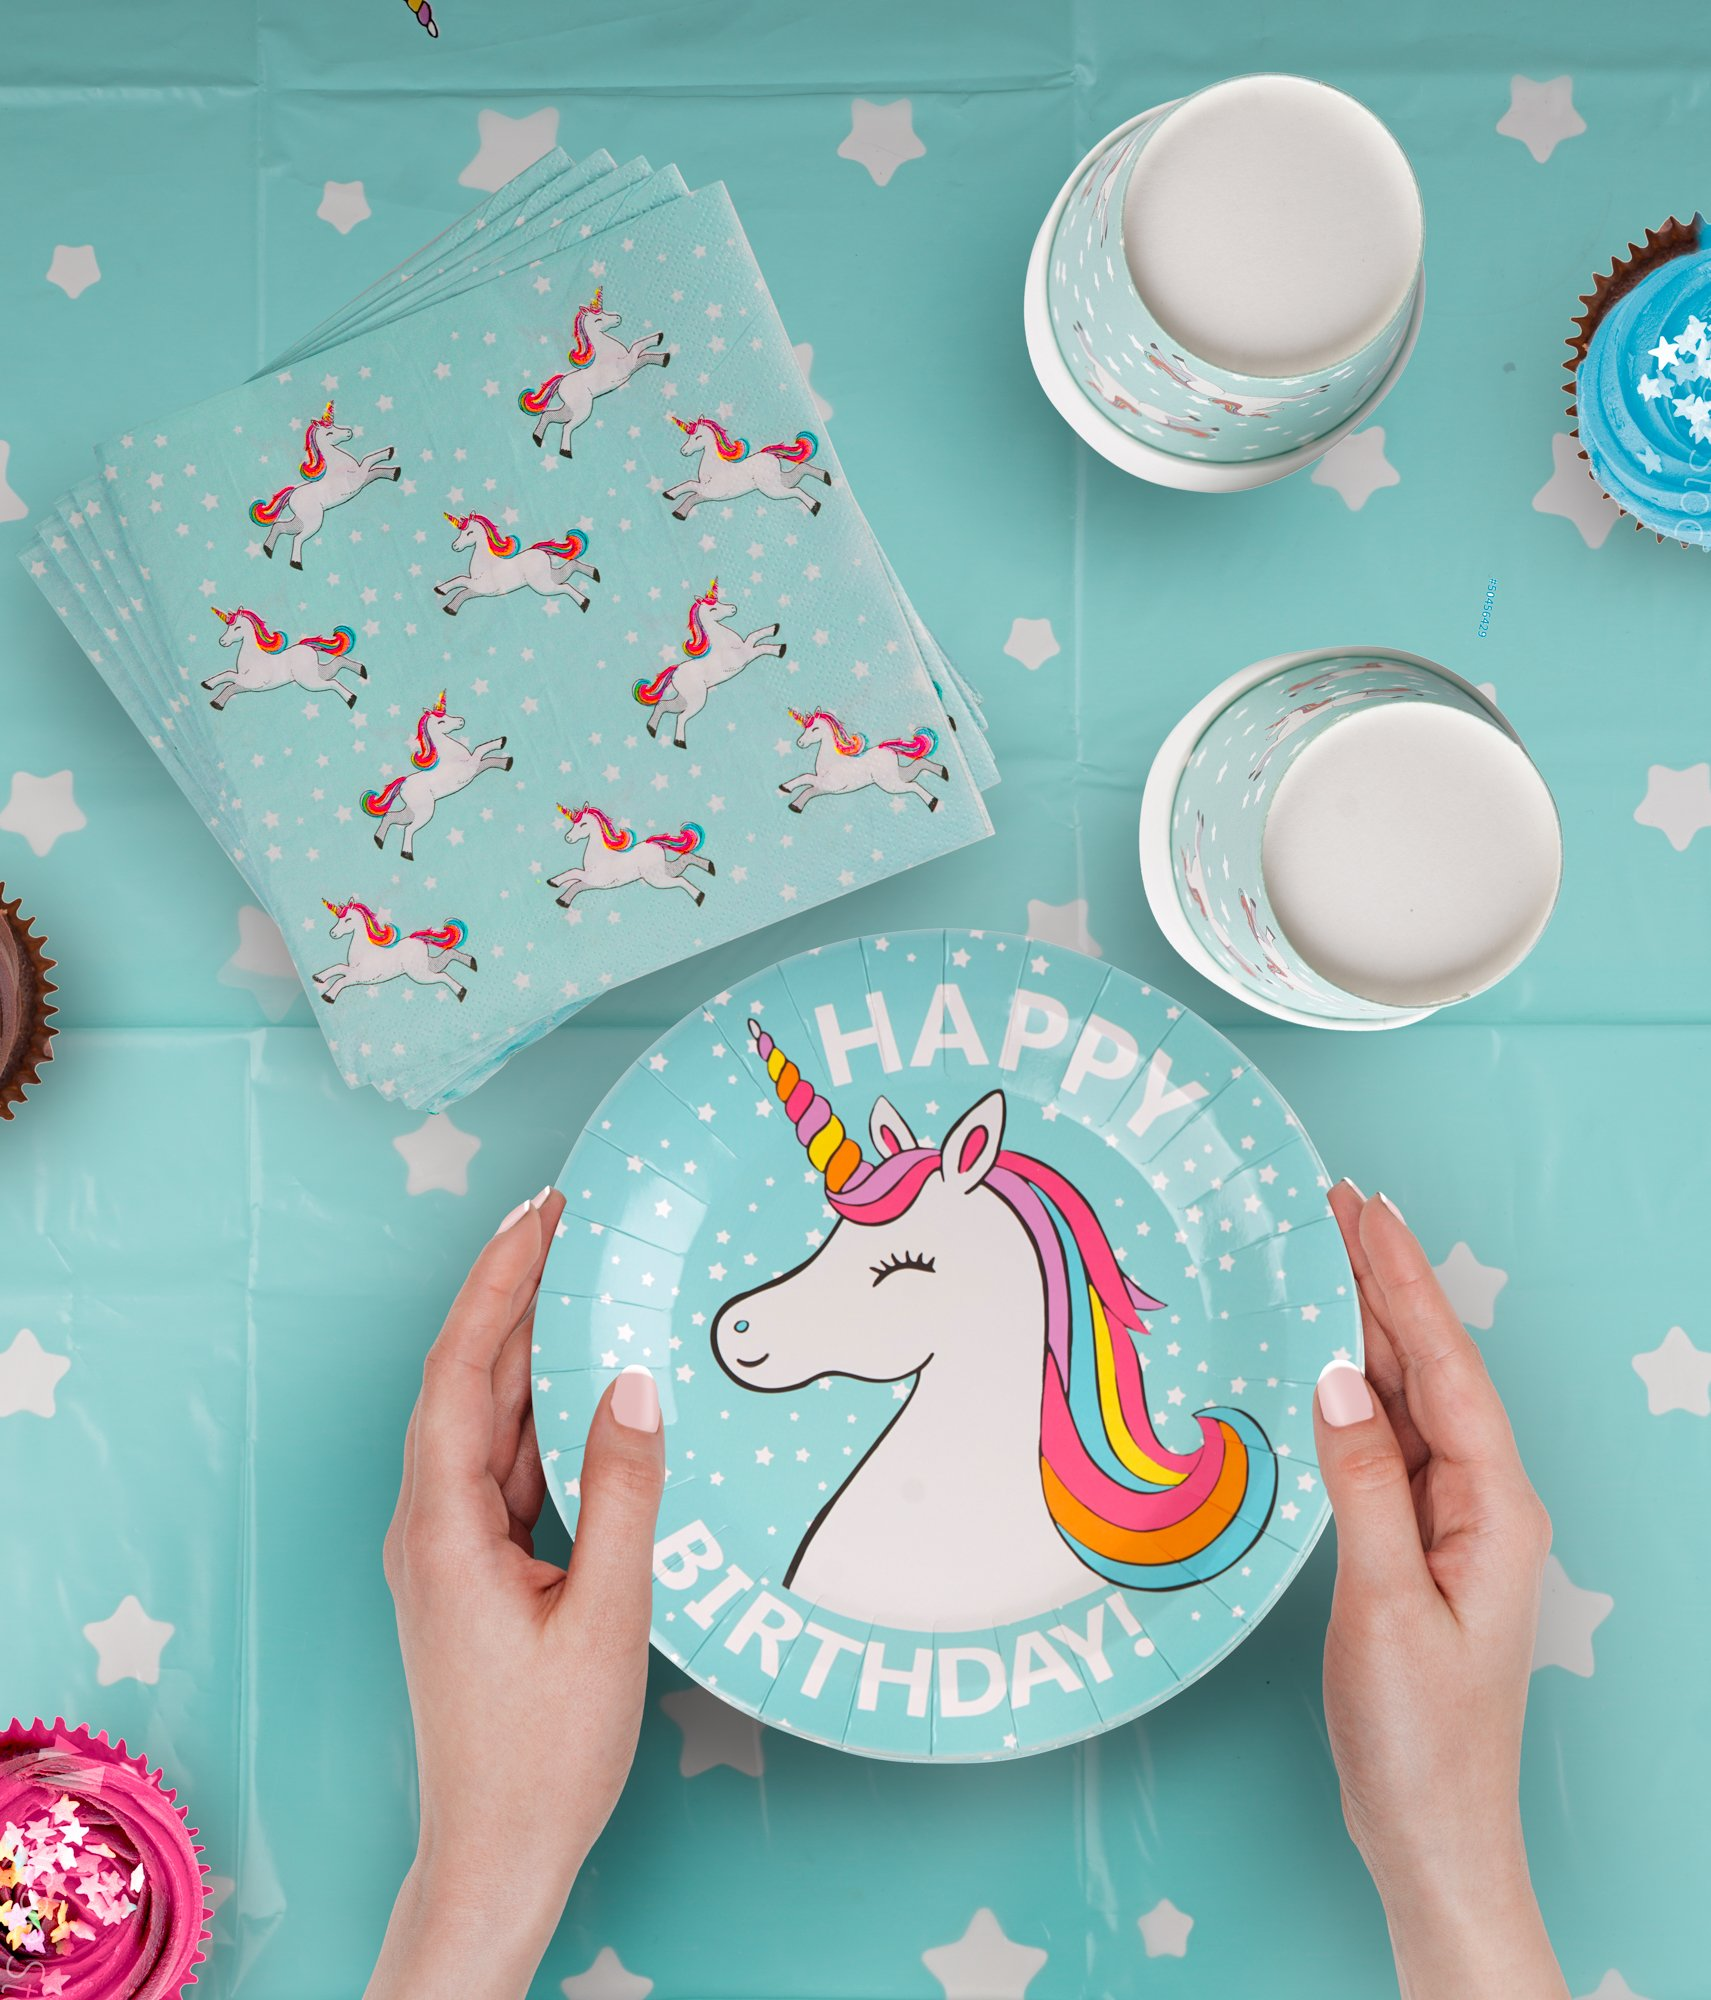 102 Piece Rainbow Unicorn Party Supplies Set Including Banner, Plates, Cups, Napkins, Straws, and Tablecloth, Serves 20 5